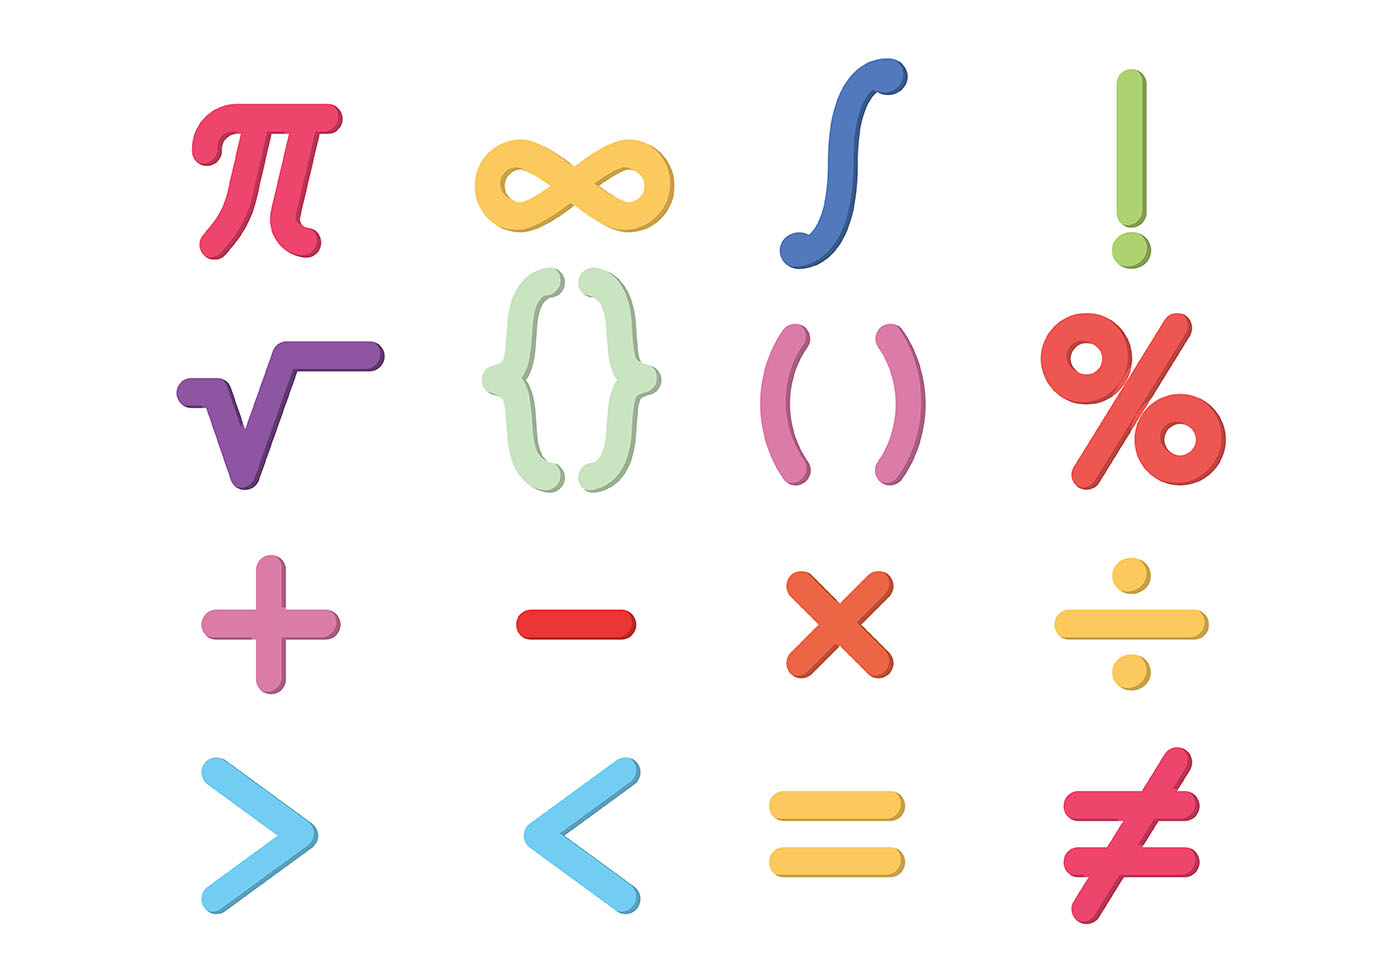 Math Symbols Vector - Download Free Vector Art, Stock ...